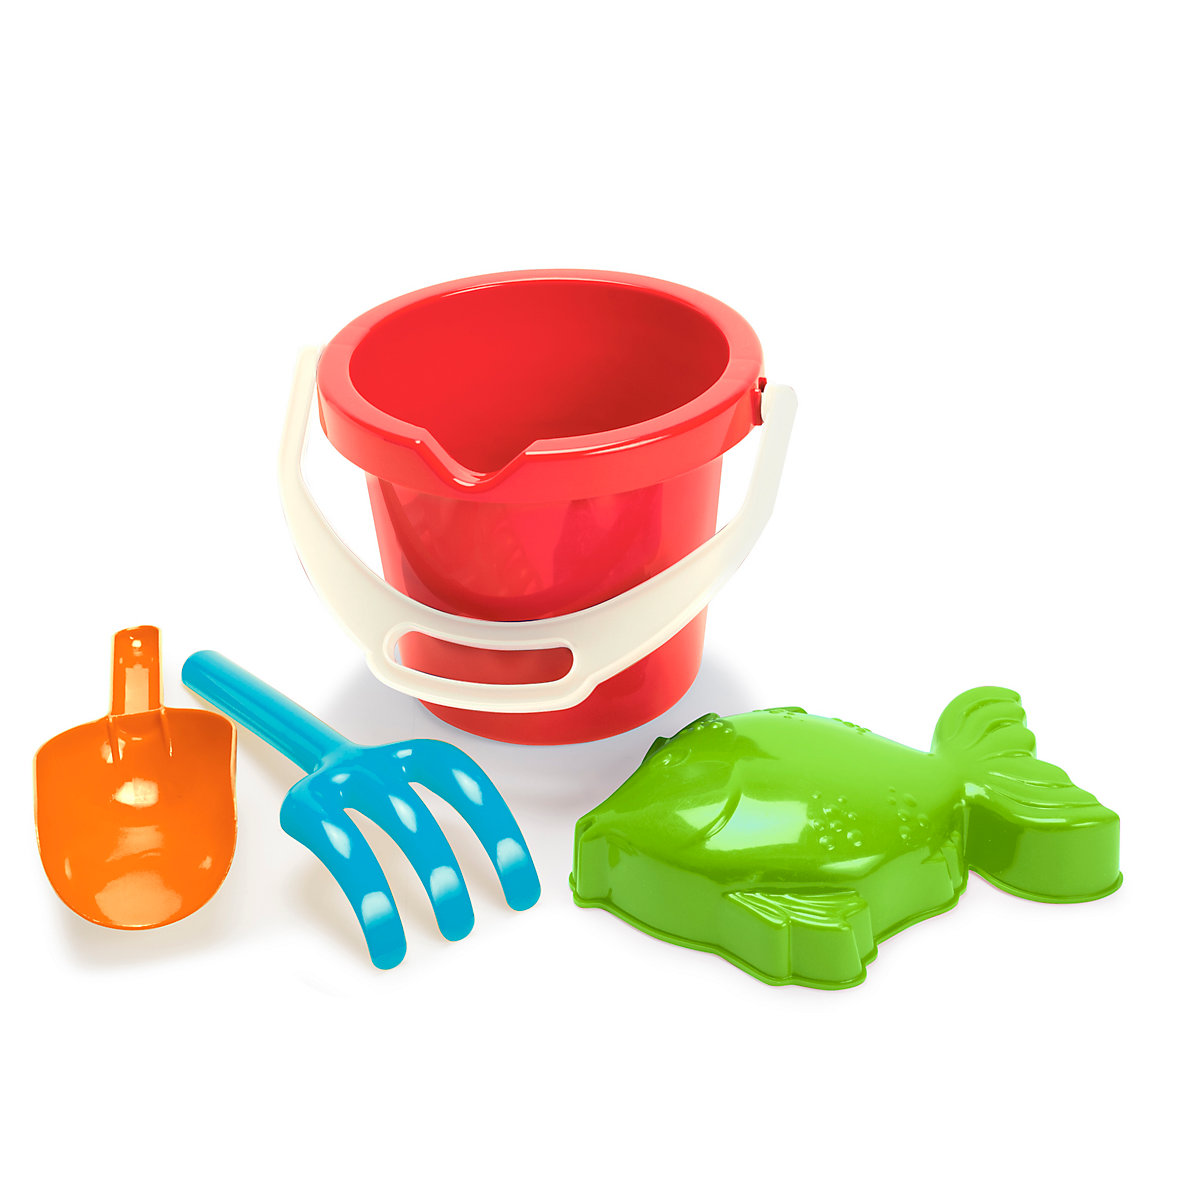 New ELC Boys and Girls Baby Bucket Set Toy From 1 year - Early Learning Centre Gifts